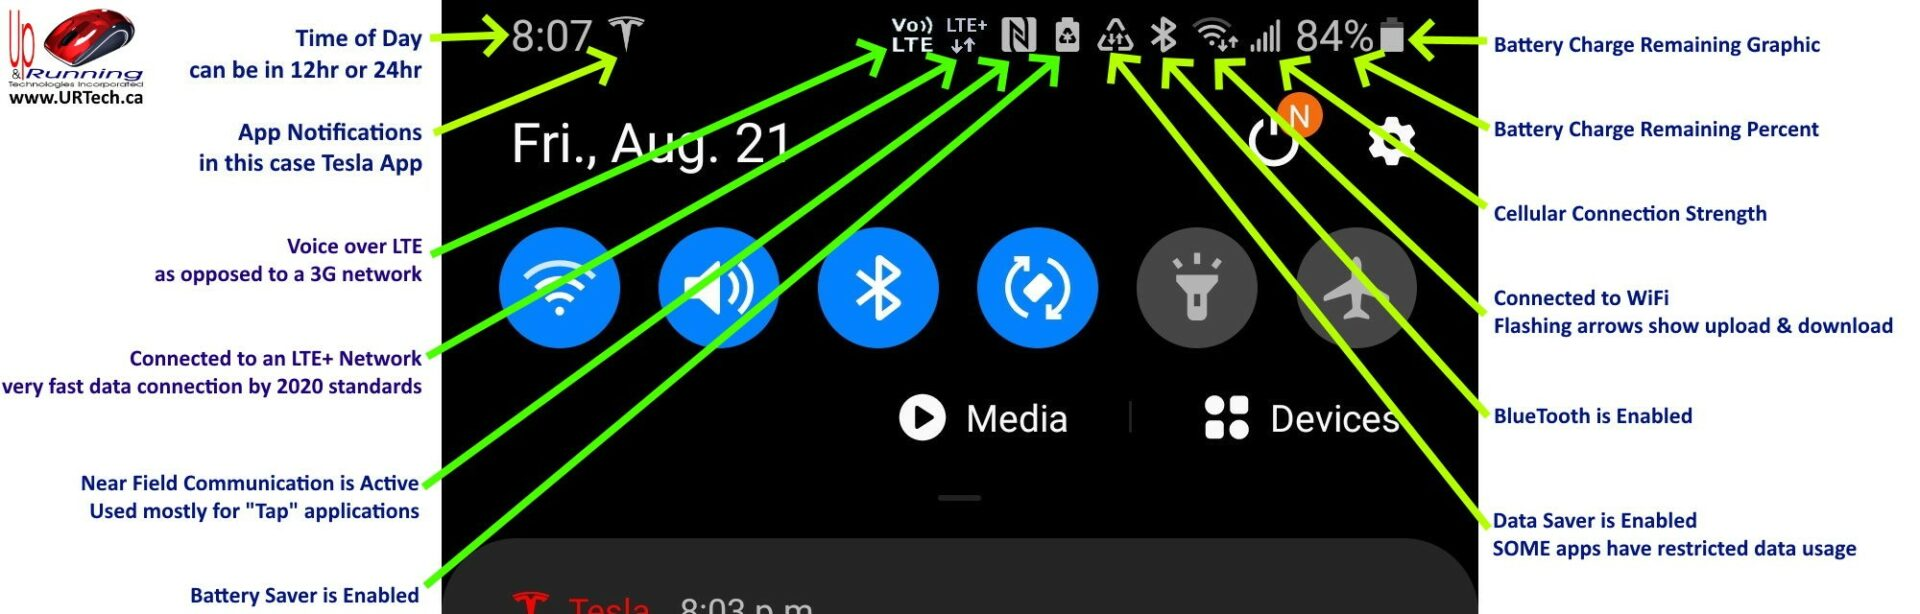 What Does the Android Icon With a Bent Arrow in Recording Look Like?